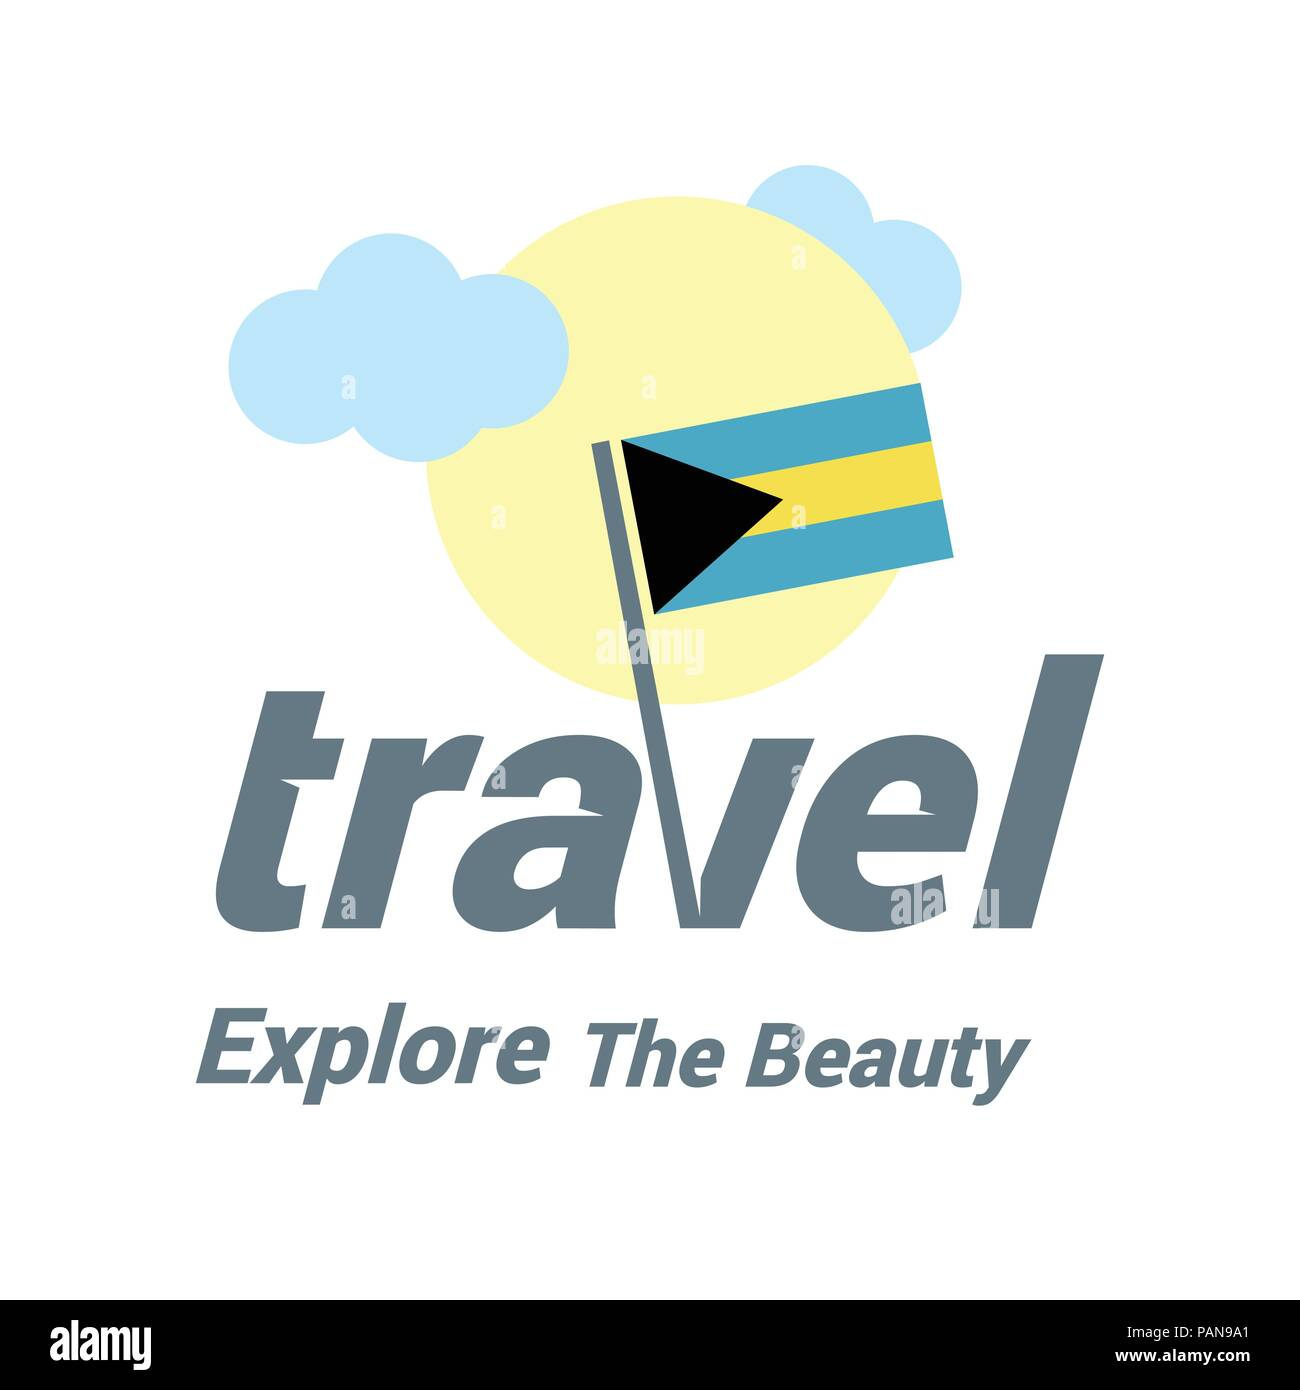 Bahamas - Stock Vector